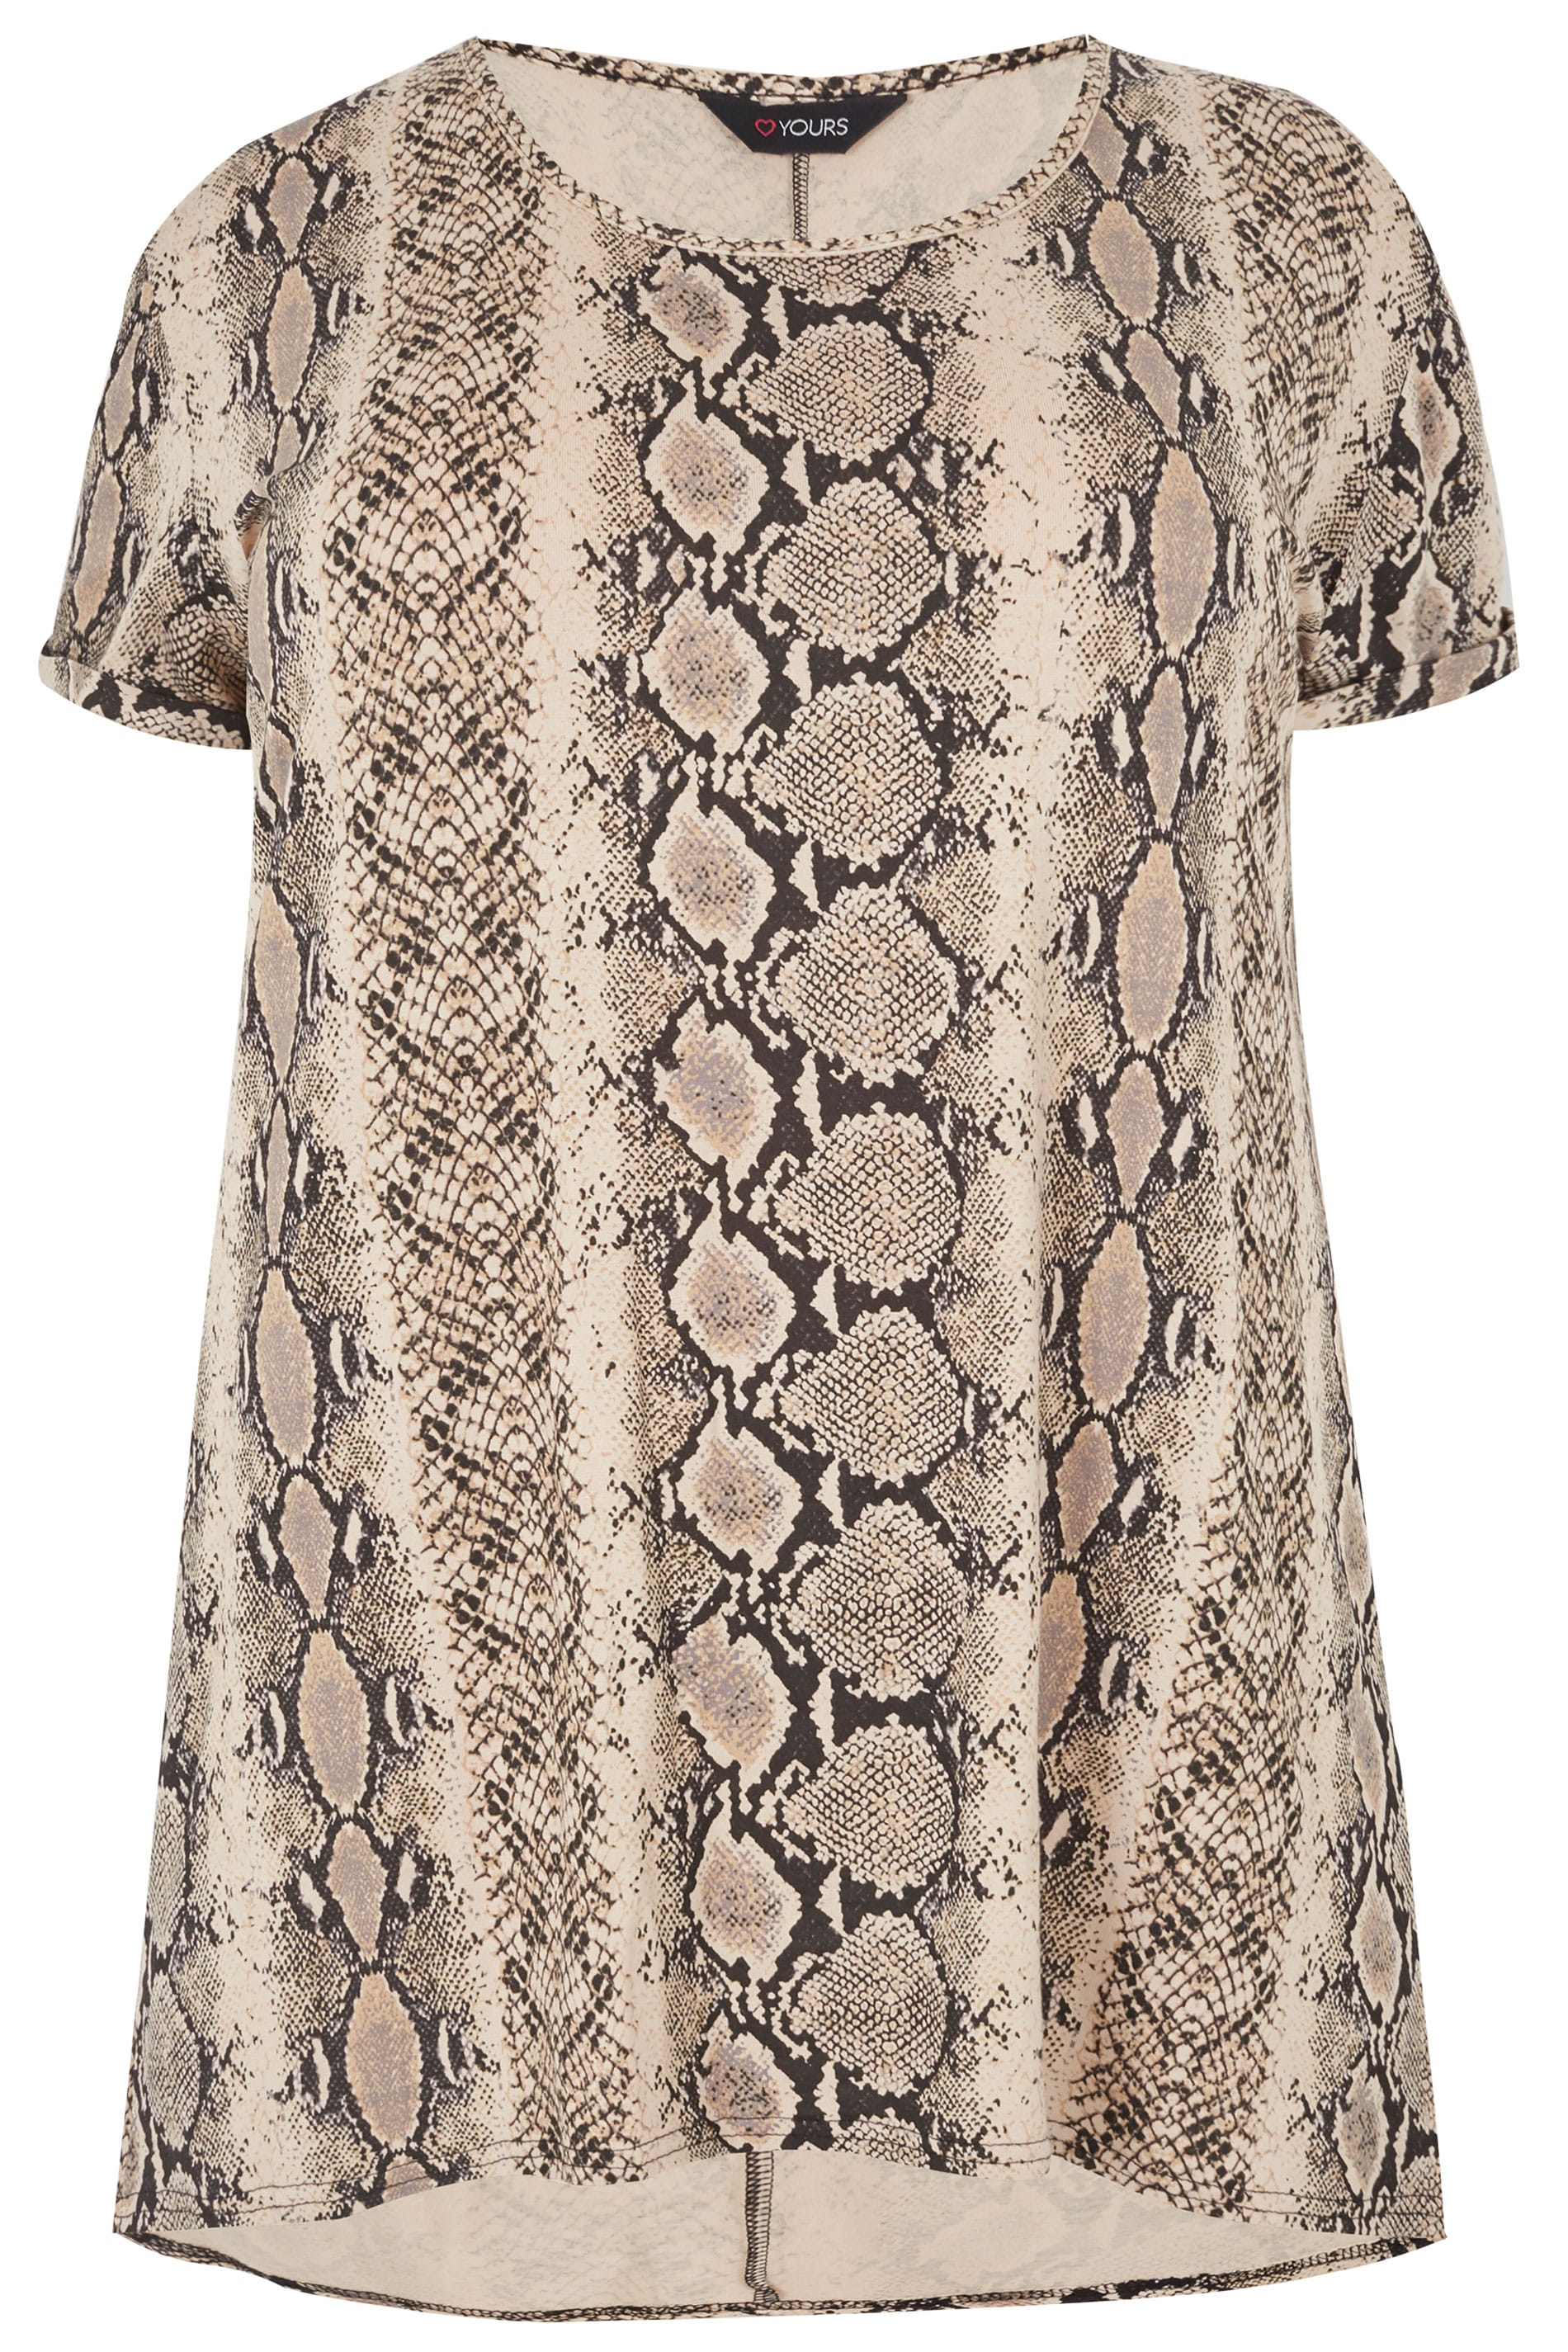 e35d8e398 Tan Snake Print T-Shirt, Plus size 16 to 36